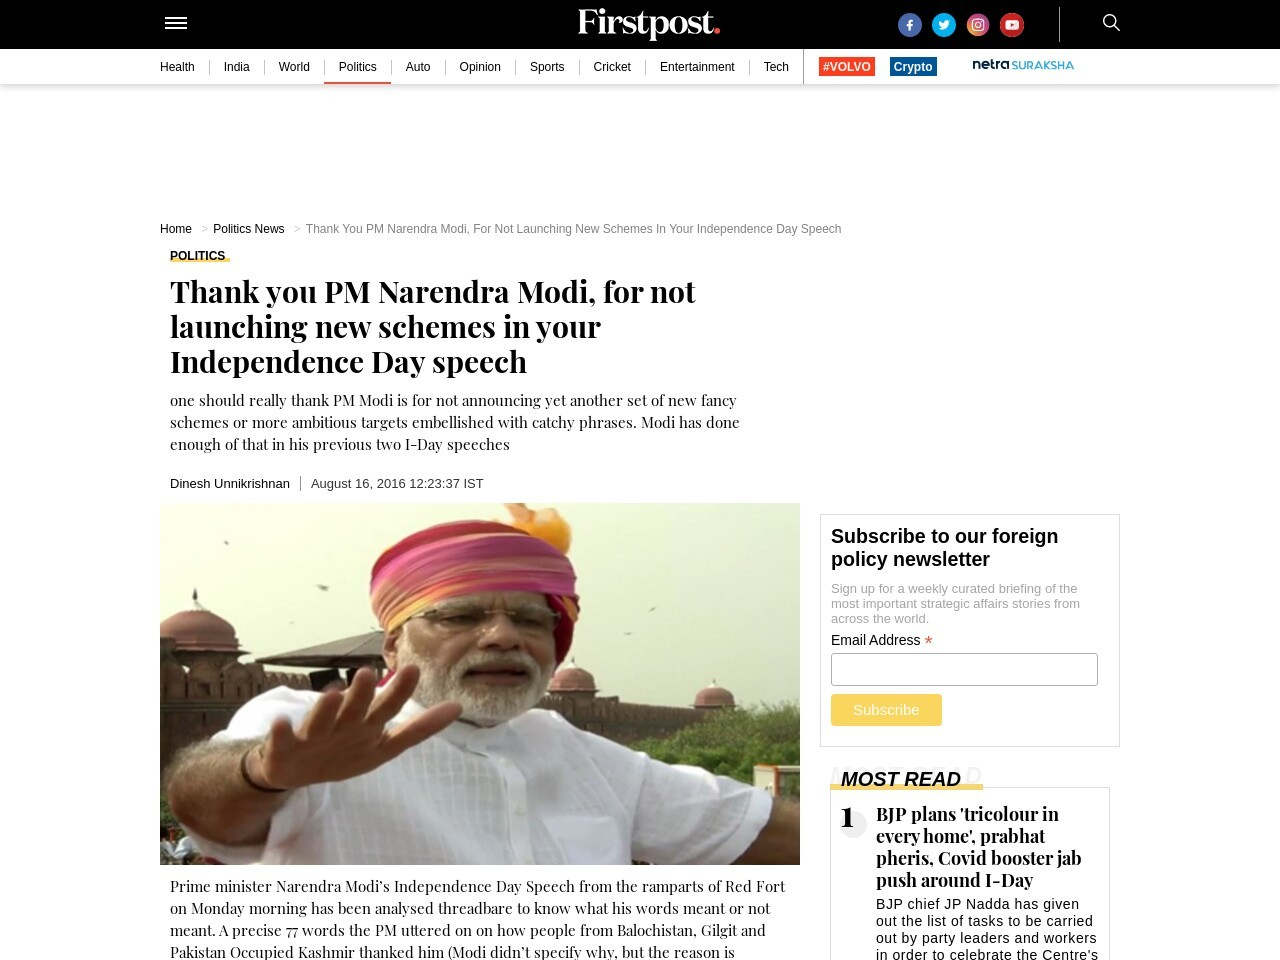 Thank you PM Narendra Modi, for not launching new schemes in your Independence Day speech